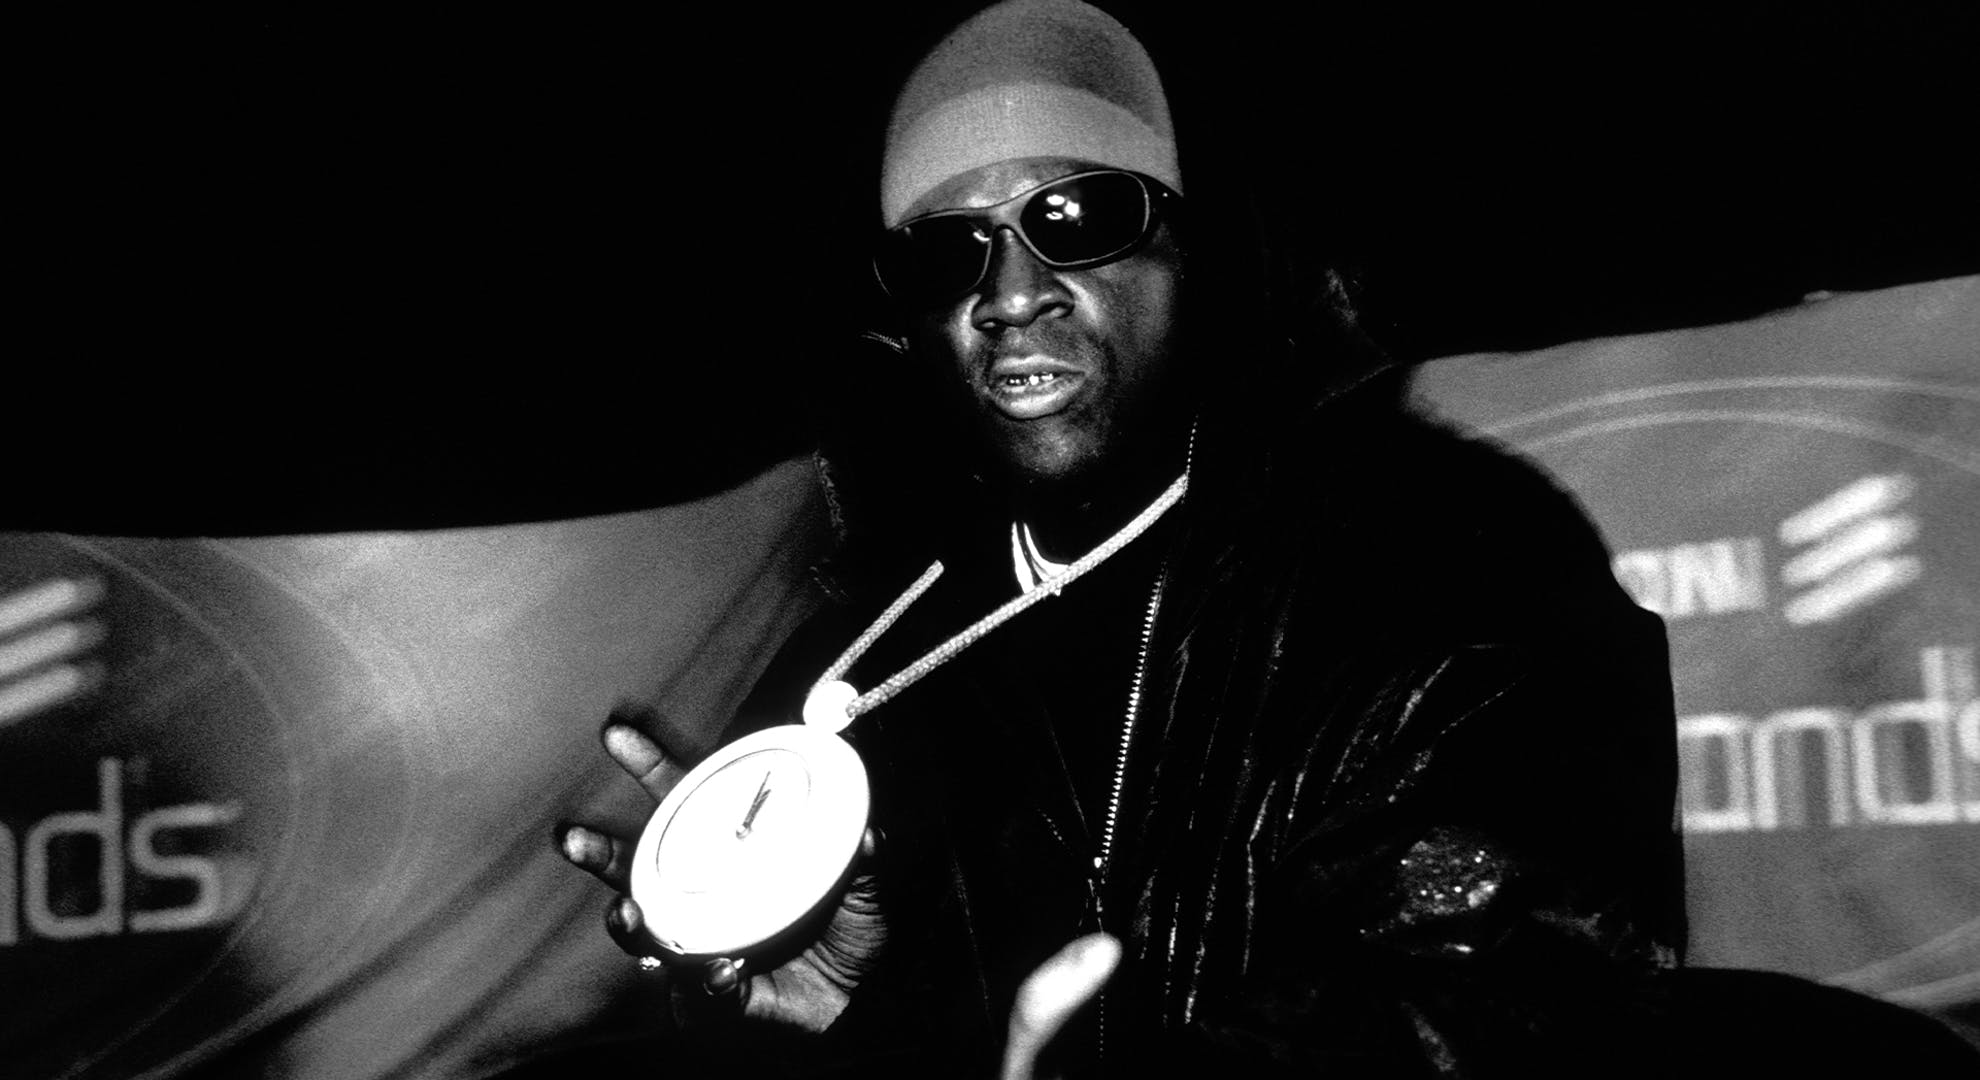 Flava Flav from Hip Hop group Public Enemy.